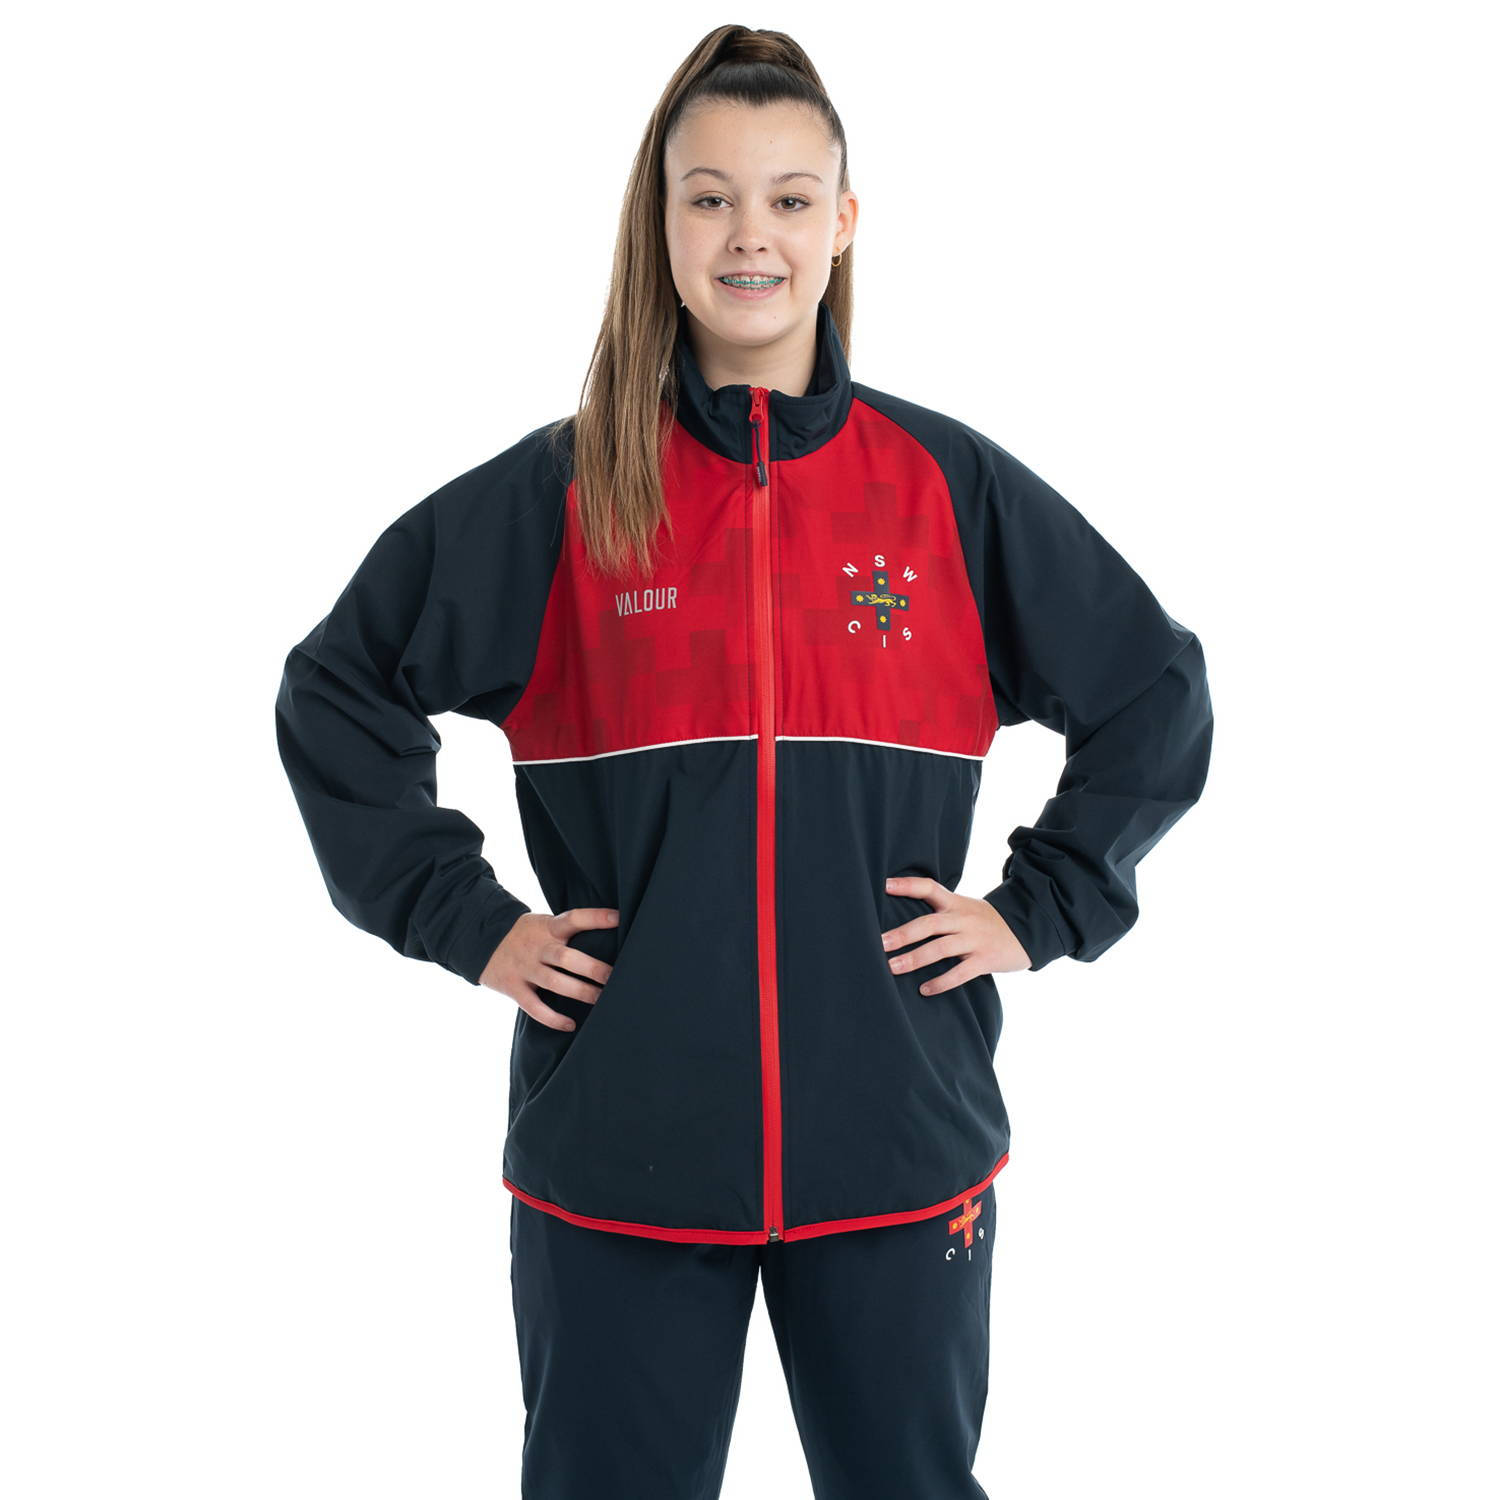 Netball tracksuit jacket front